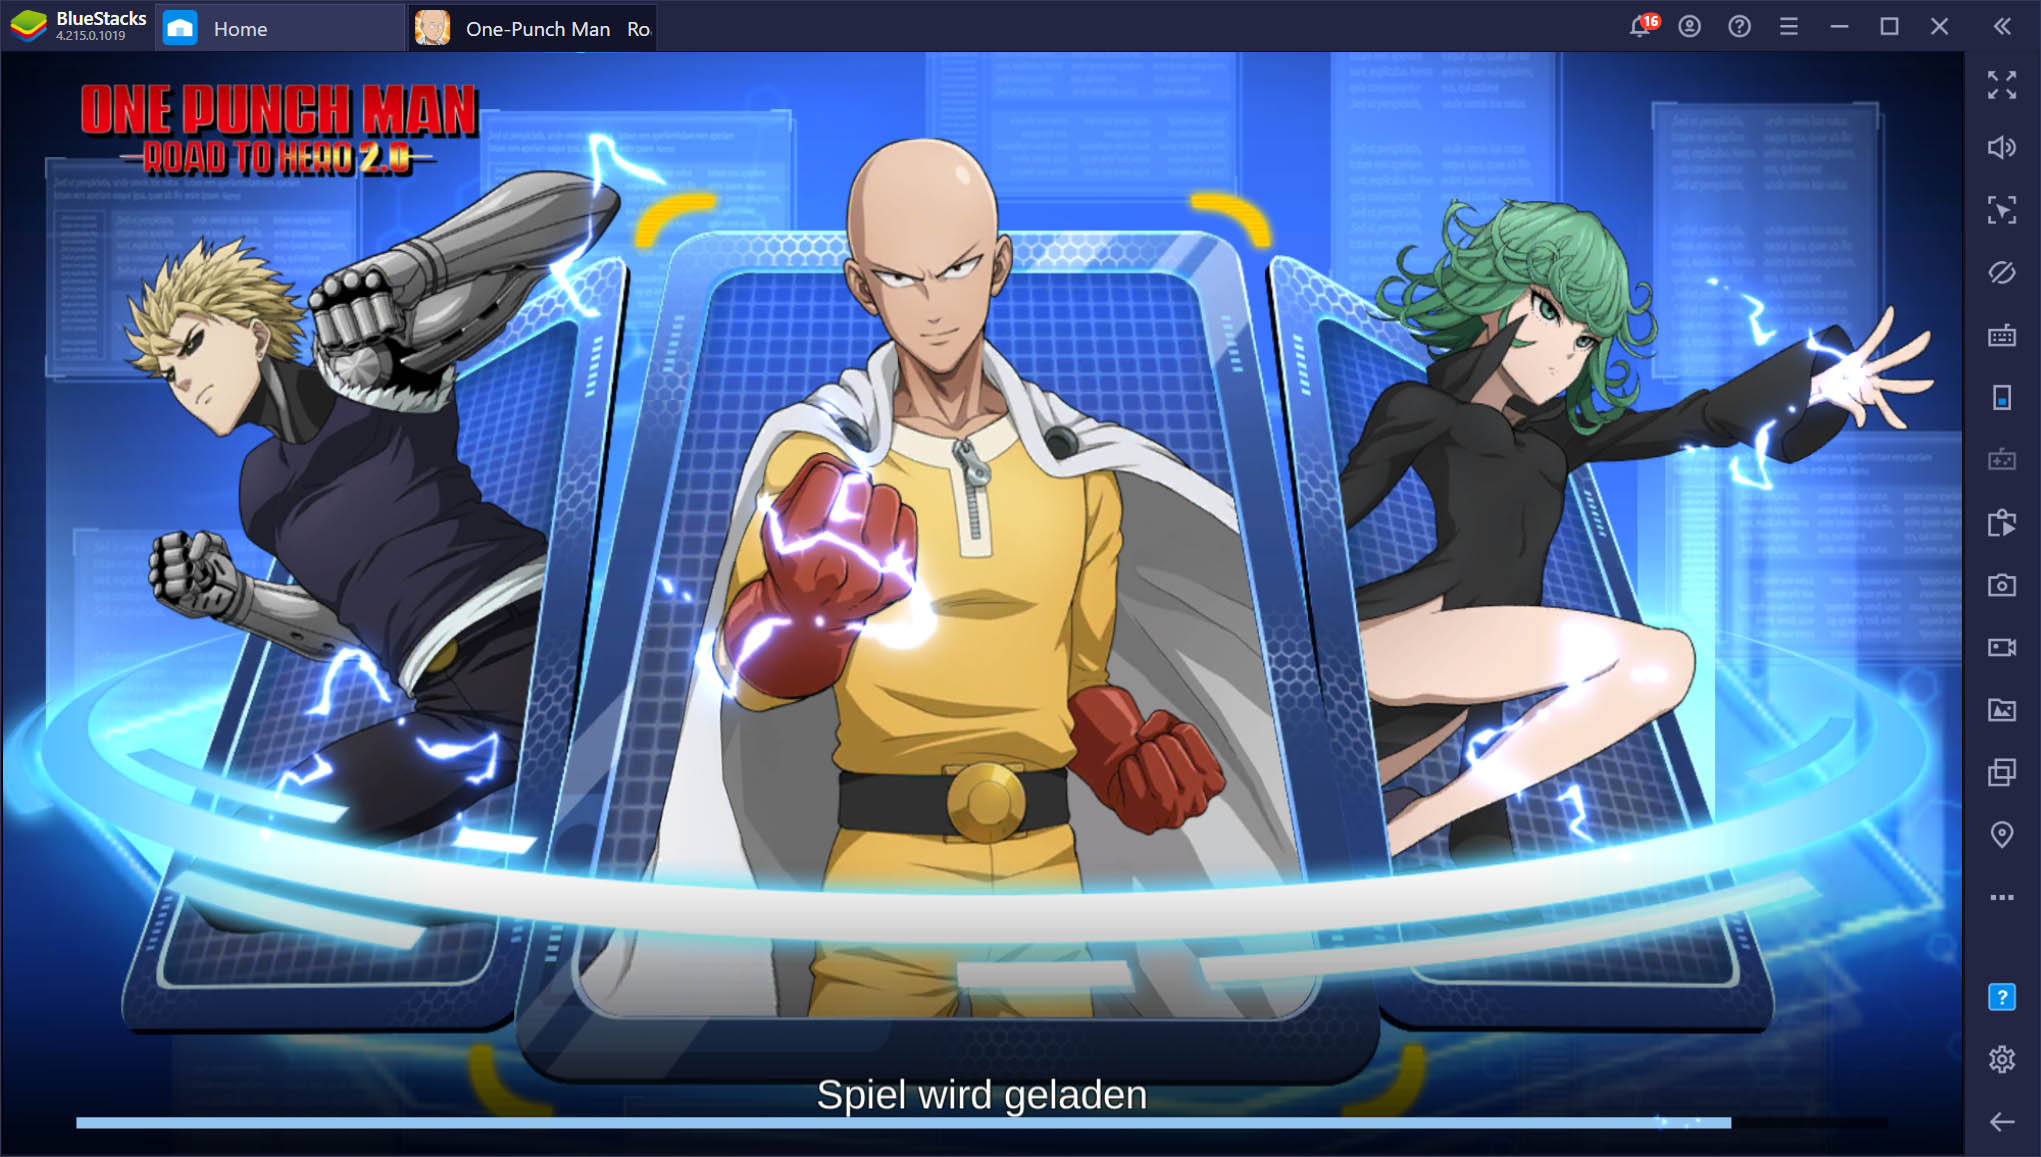 One Punch Man: Road to Hero 2.0 – Tipps, Tricks und Strategien